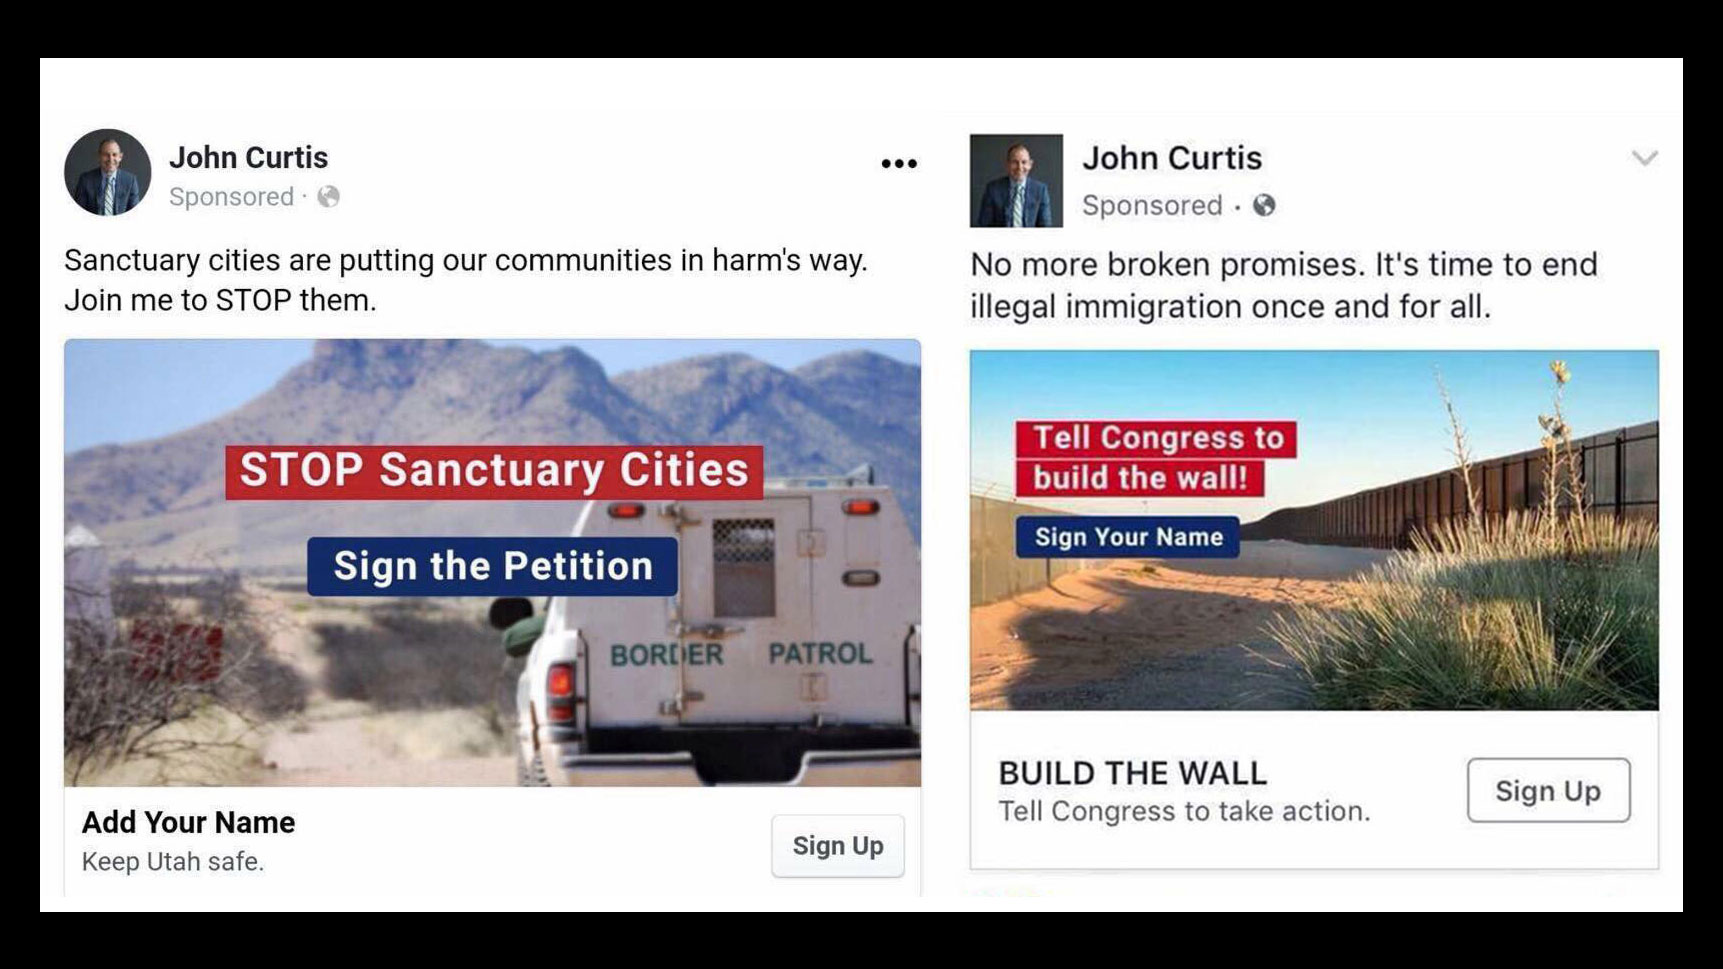 screenshots of two advertisements of Facebook posts by John Curtis